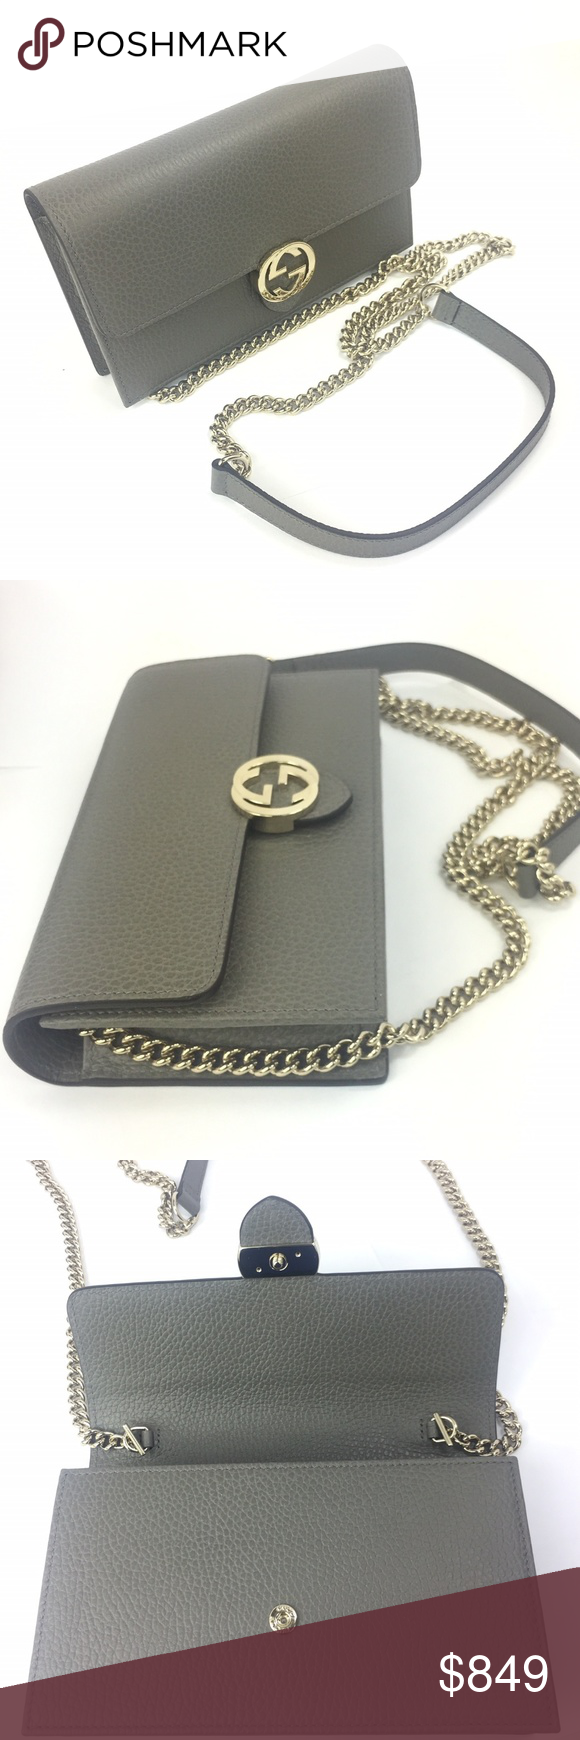 Gucci  510314 Gray GG Closure Chain Crossbody - Gray Textured Leather  Exterior - Flap Closure b2324bde785f6